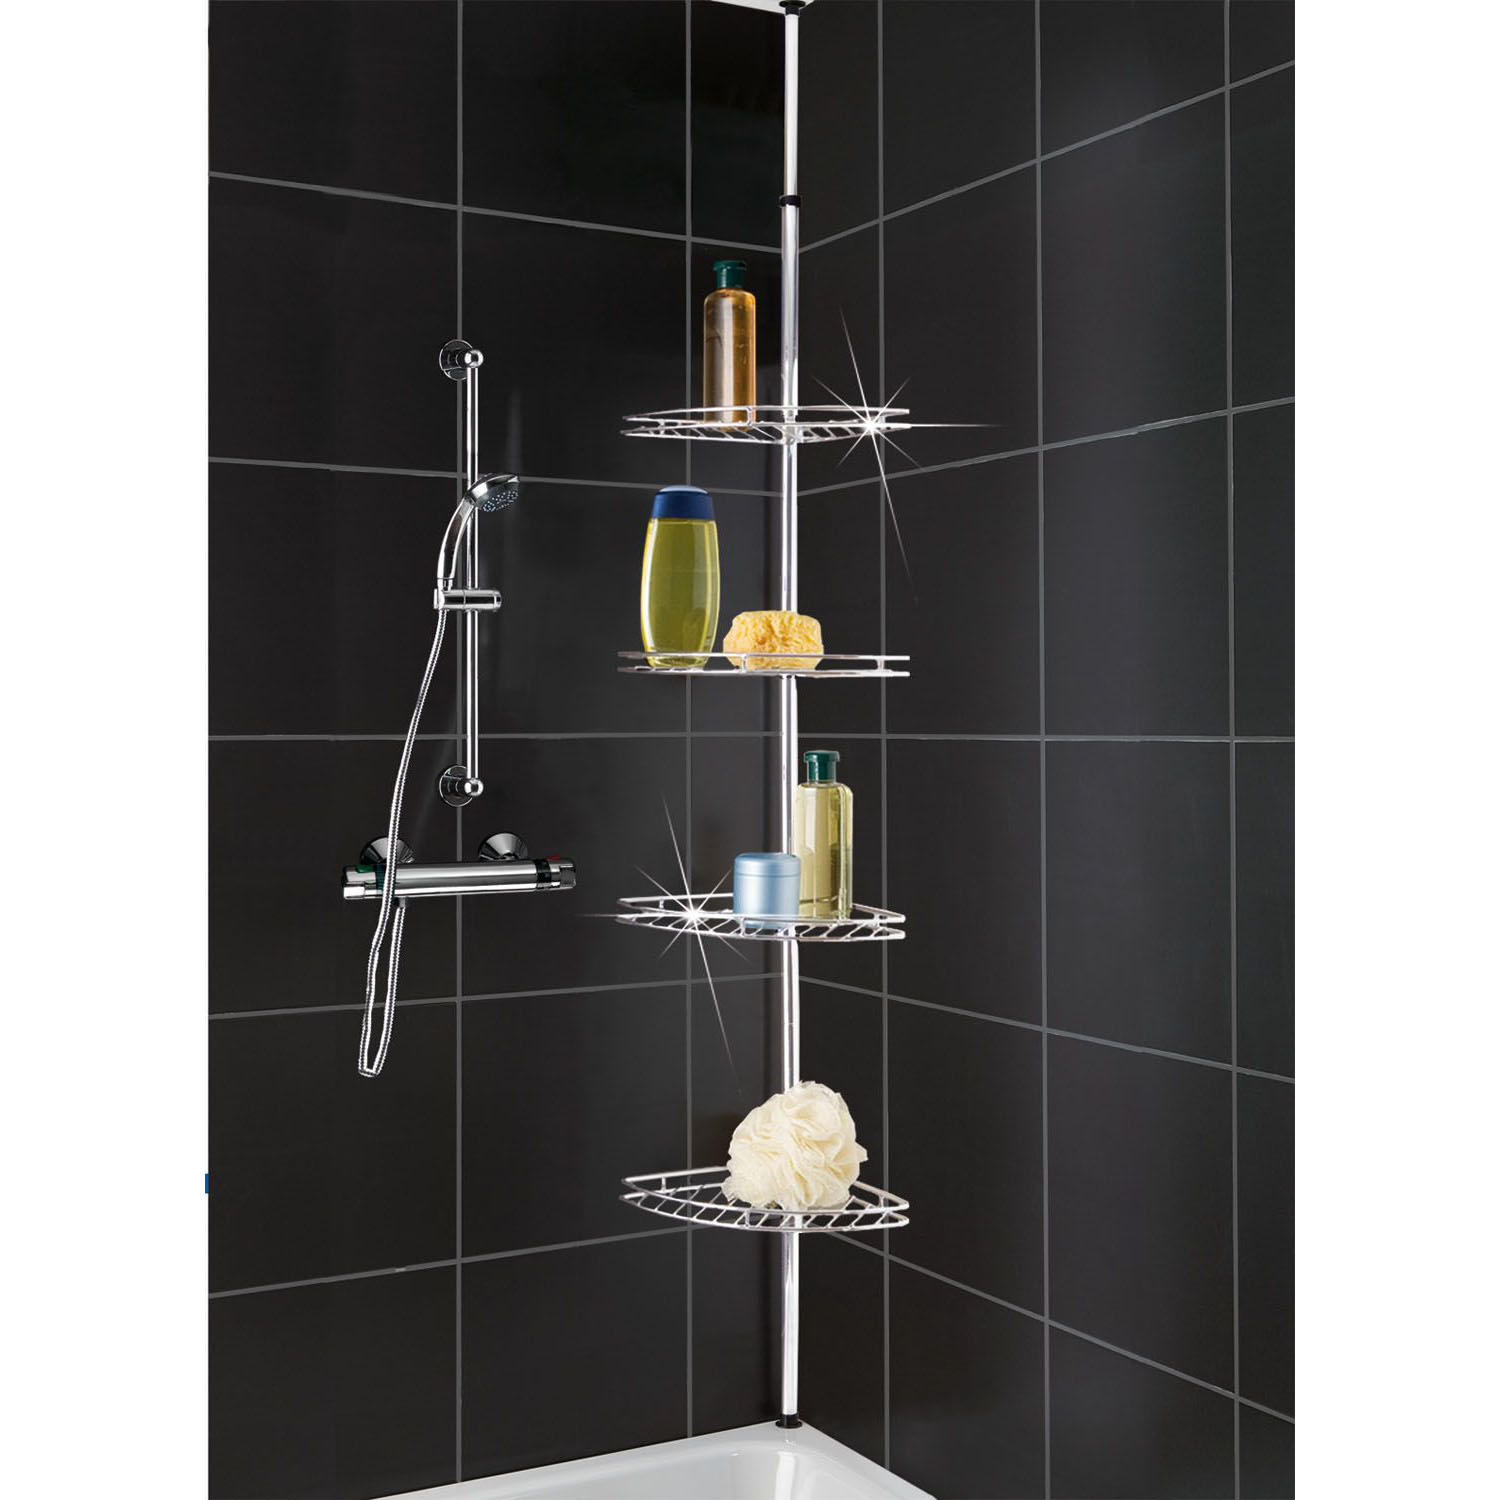 METAL CORNER SHOWERBATHROOM BASKET CADDYSHELF TELESCOPIC STORAGE SHELVES TIER EBay